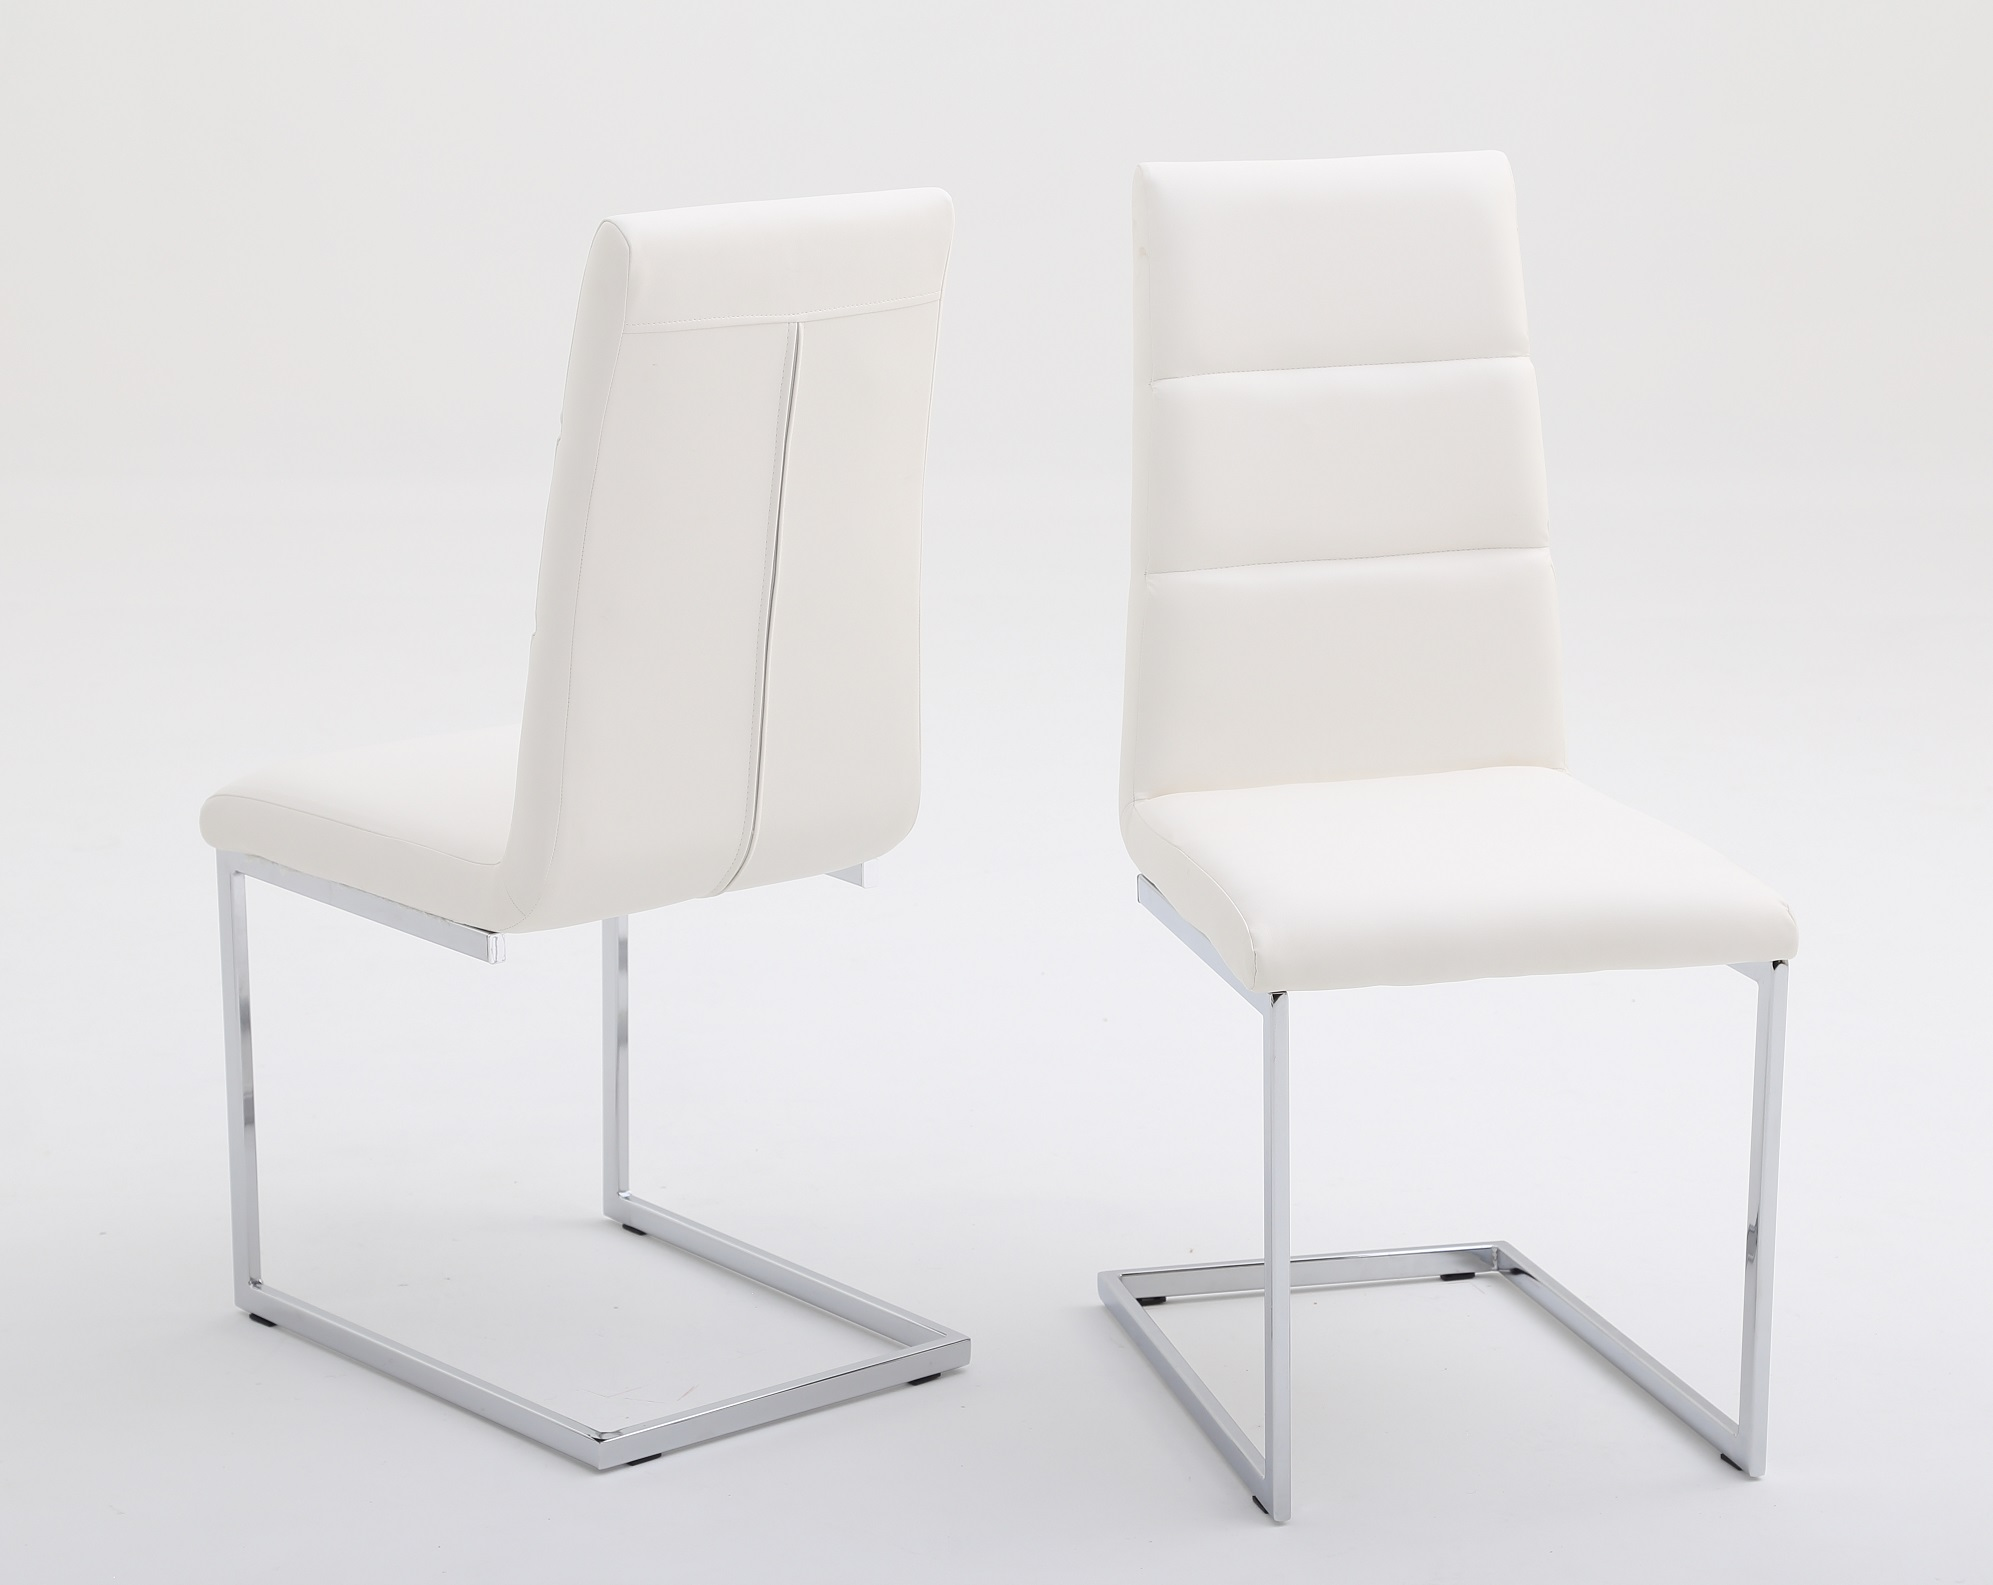 https://www.firstfurniture.co.uk/pub/media/catalog/product/z/a/zara_chair_white.jpg